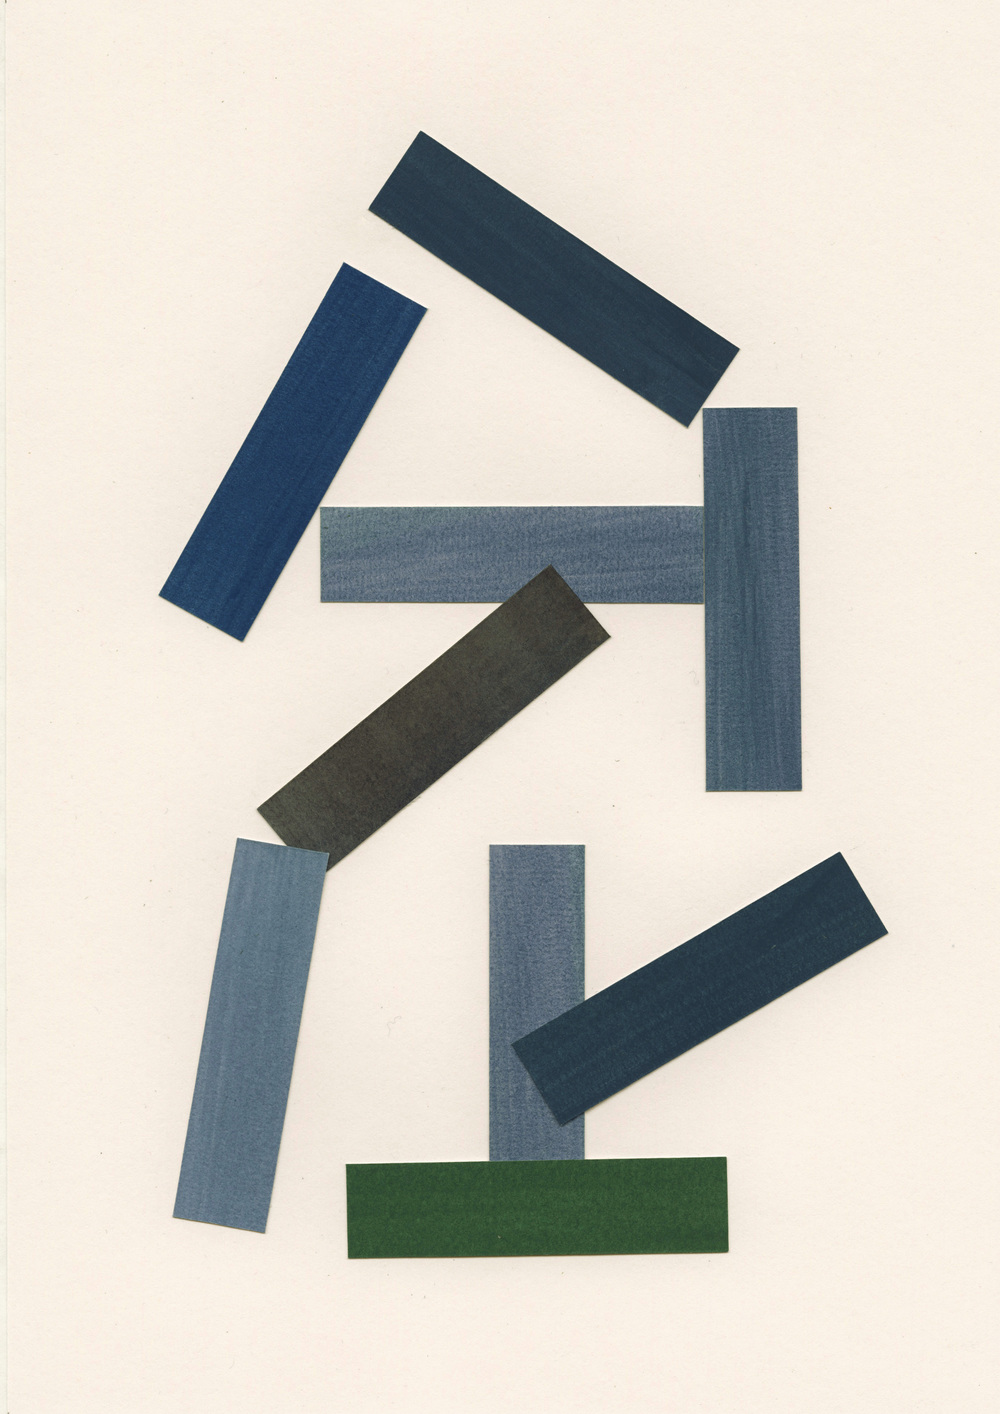 Liam Stevens    Rectilinear Form No.3 (Build)  Gouache on paper, 21 x 29.7cm,2014 Framed: 28.5 x 37cm £490   Enquire